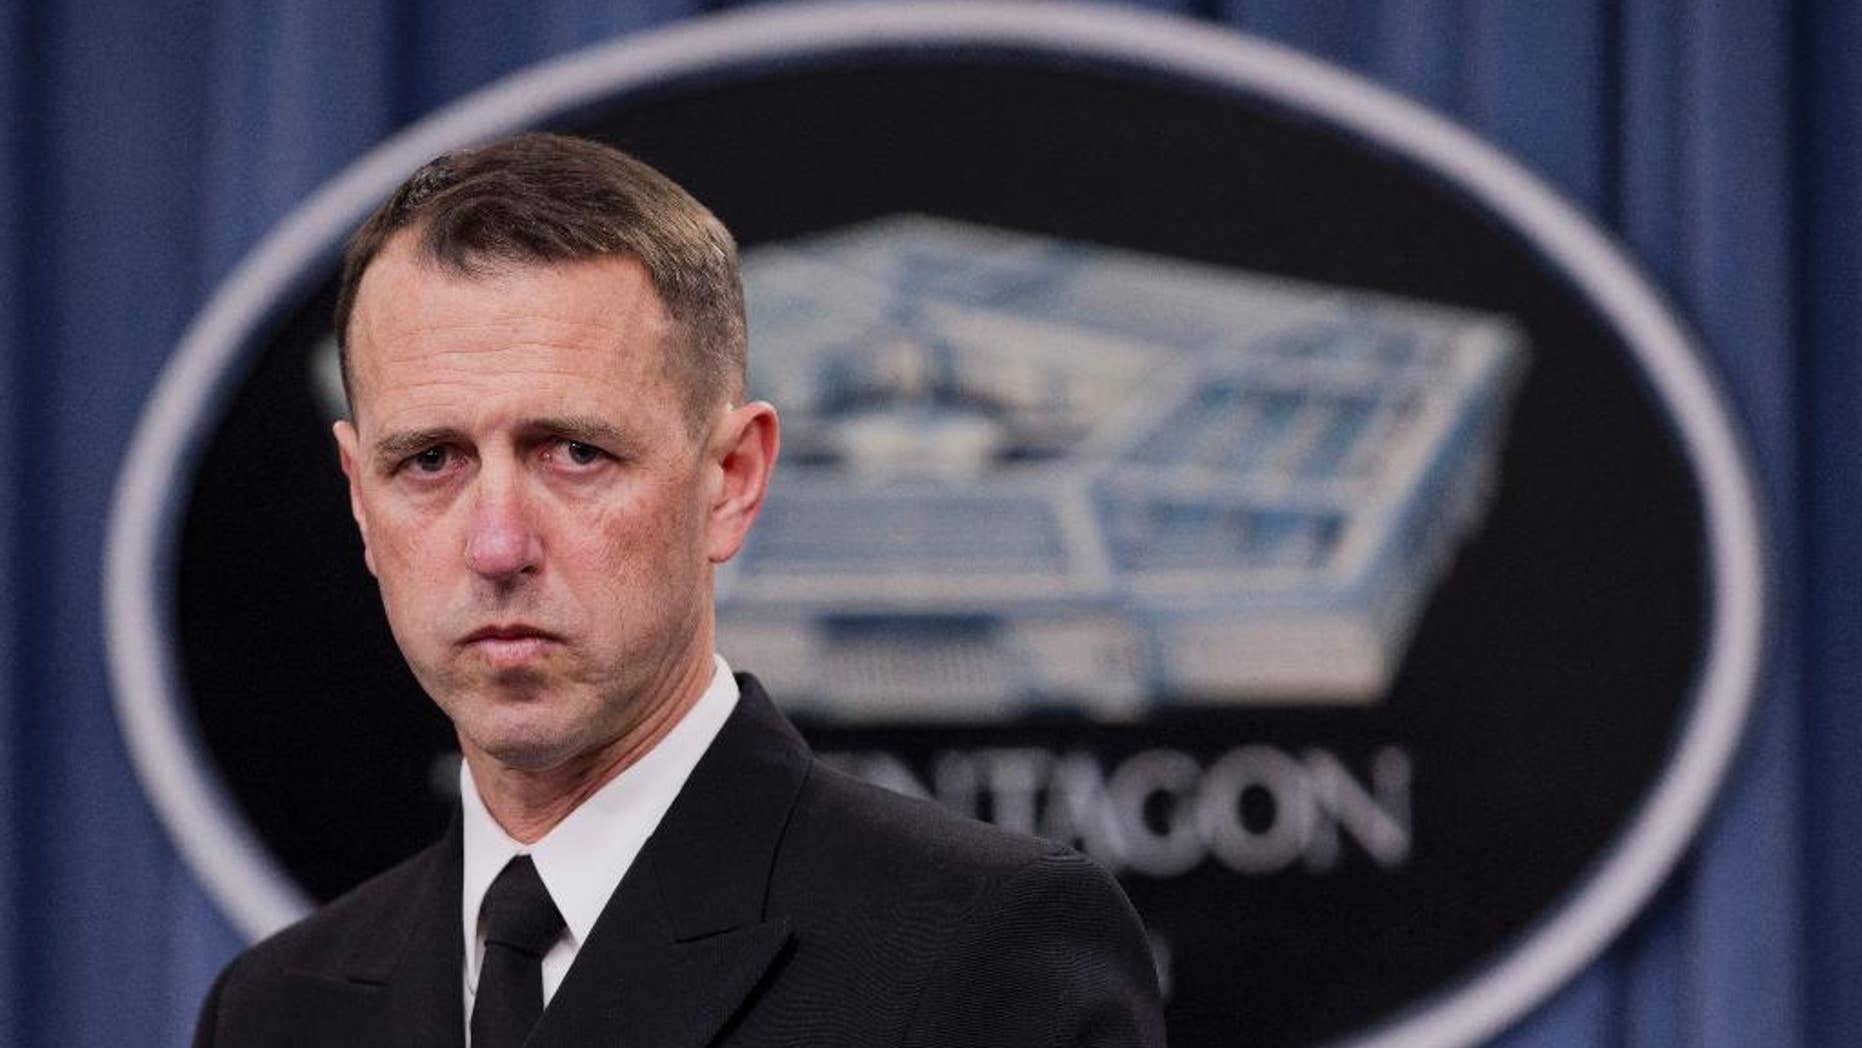 """FILE - In this Feb. 4, 2014 file photo, Adm. John M. Richardson speaks during a news conference at the Pentagon. Russian jets buzzing a U.S. military ship and planes in the Baltics are escalating tension between the two nations, the chief of naval operations said Monday, May 2, 2016. """"My hope is that we can stop this sort of activity,"""" Richardson told reporters at the Pentagon. (AP Photo/Manuel Balce Ceneta, File)"""